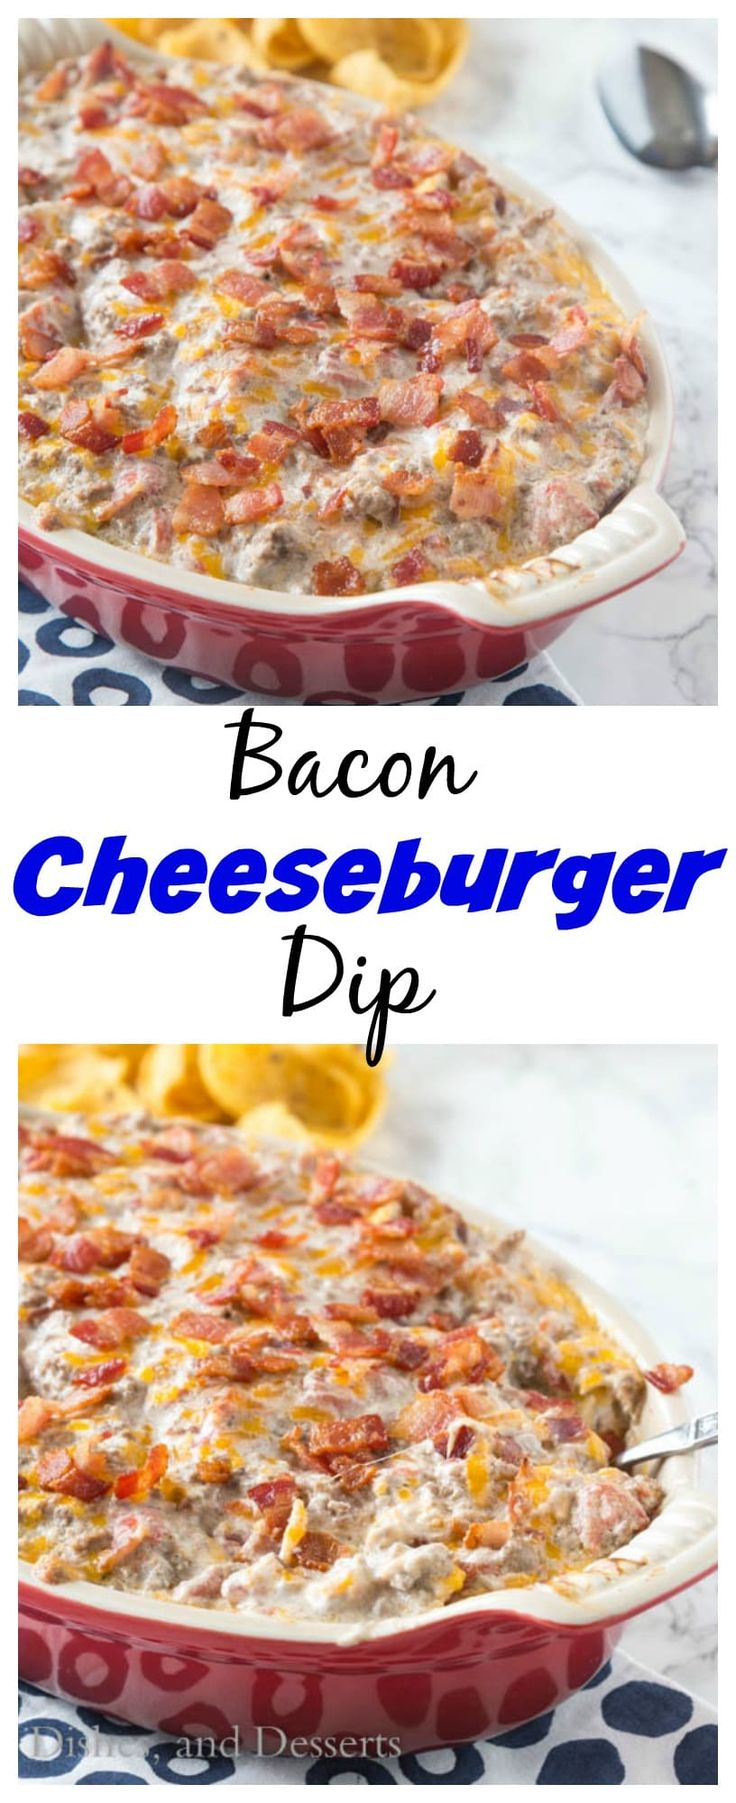 Bacon Cheeseburger Dip - all the flavor of your favorite bacon cheeseburger in an ooey, gooey, cheesy, dip.  Great for game day, entertaining or just because!